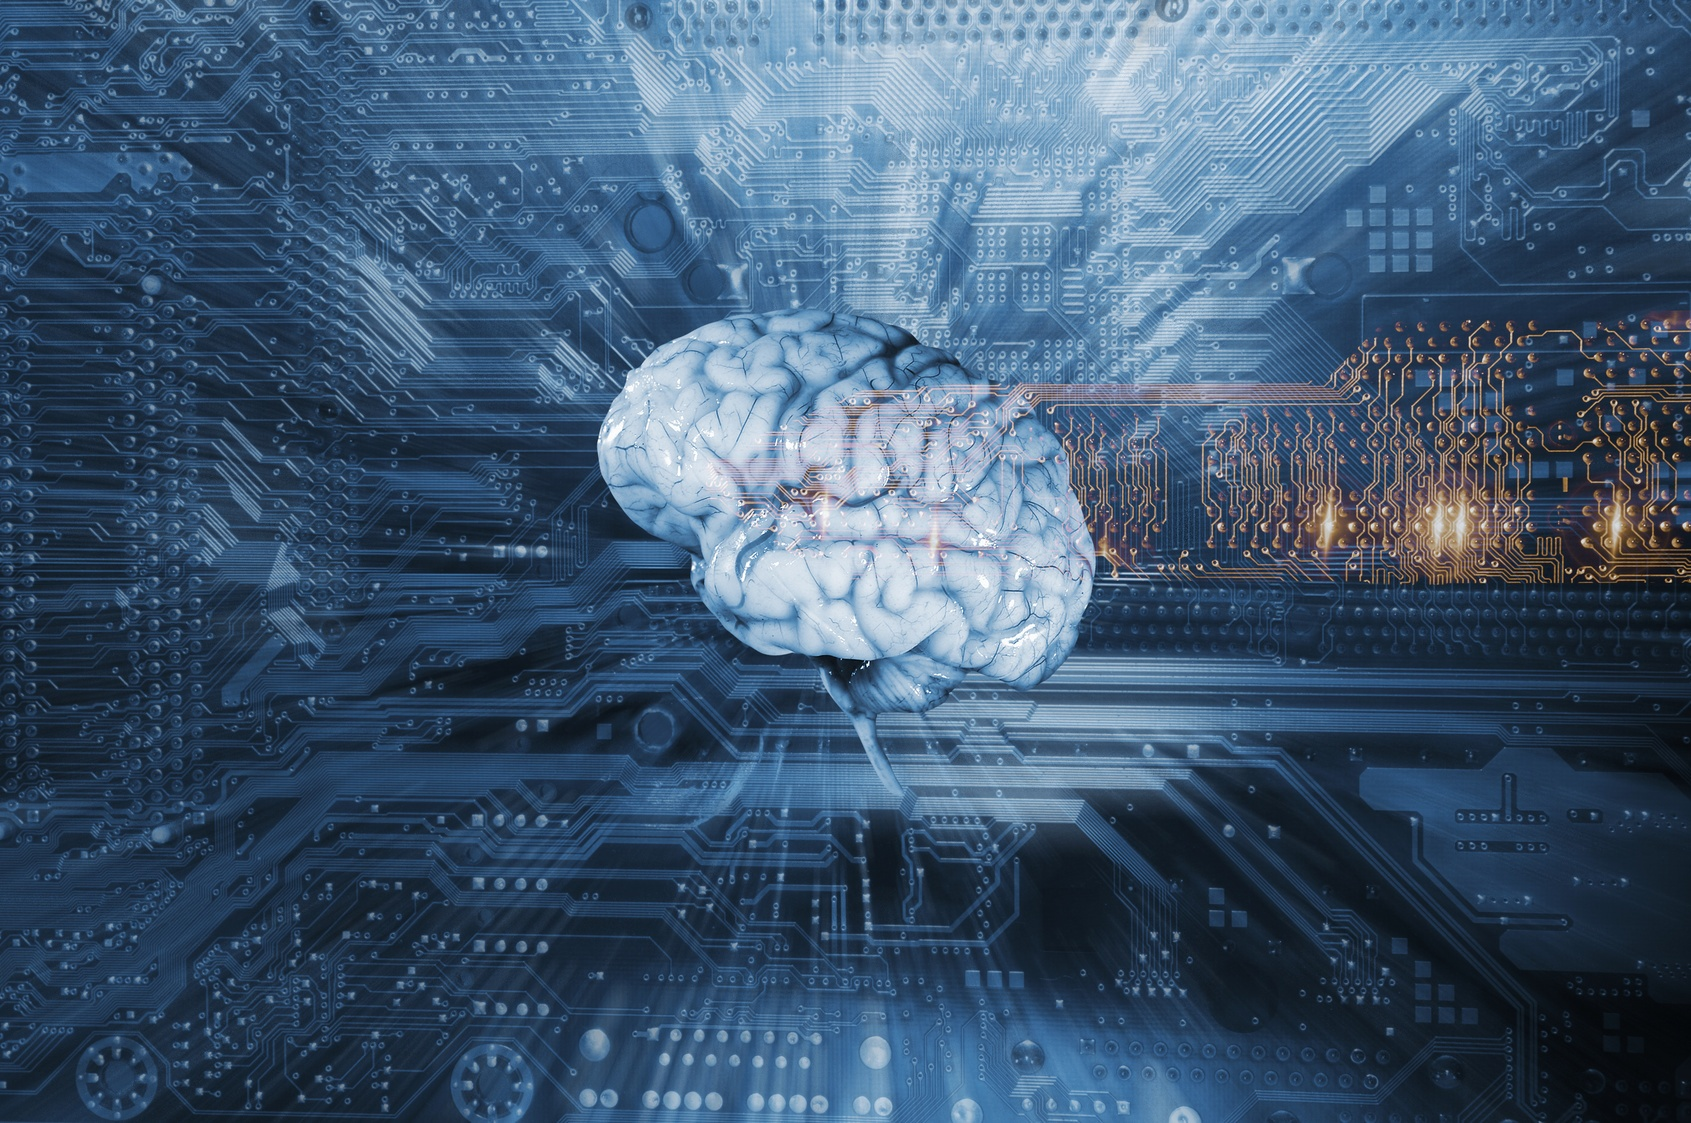 Concept of Artificial Intelligence and the Industrial Internet of Things